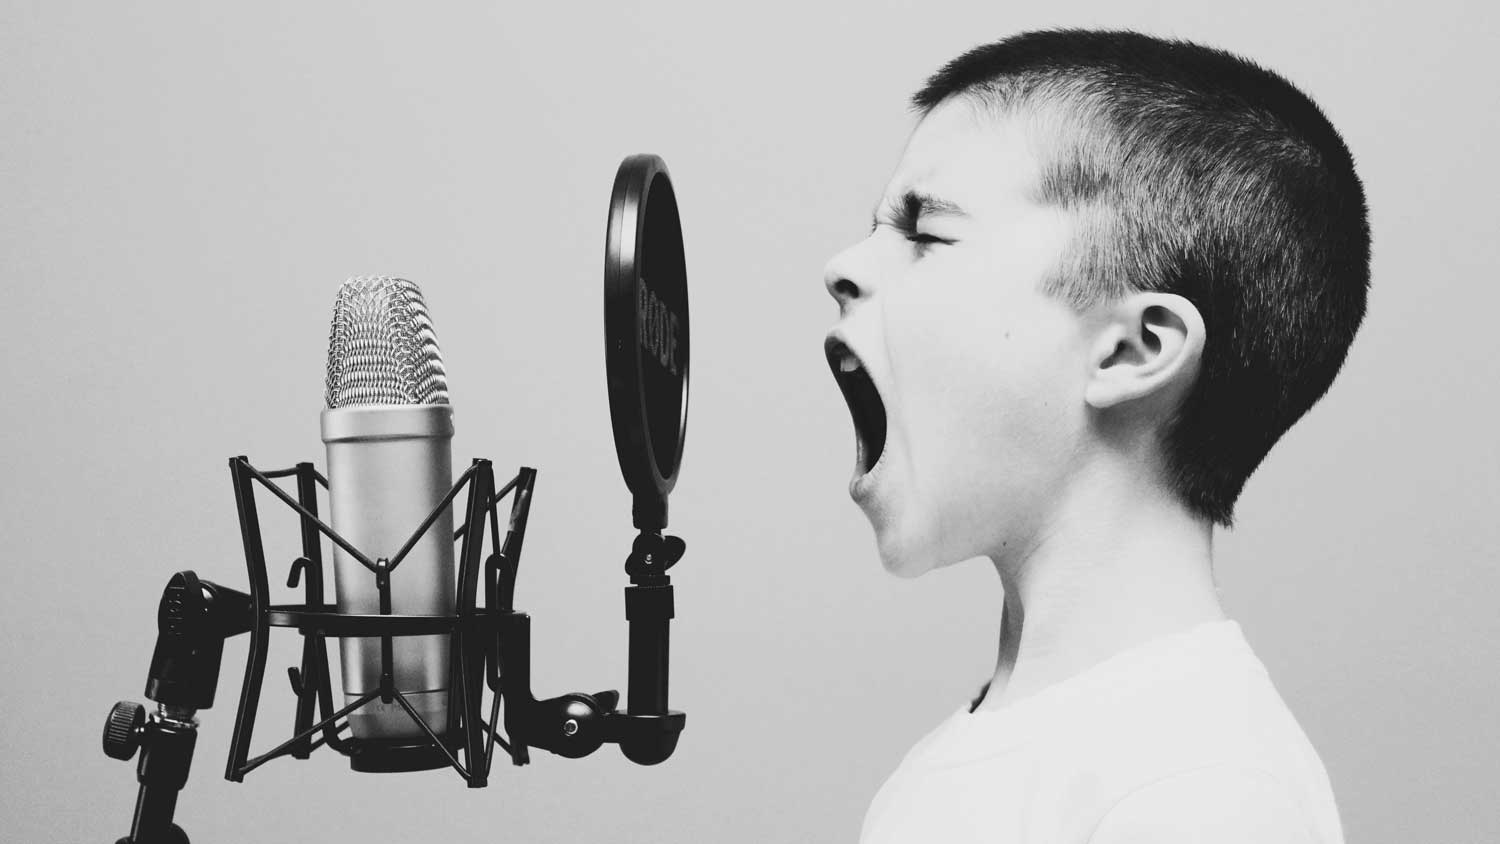 shouting-into-microphone-1